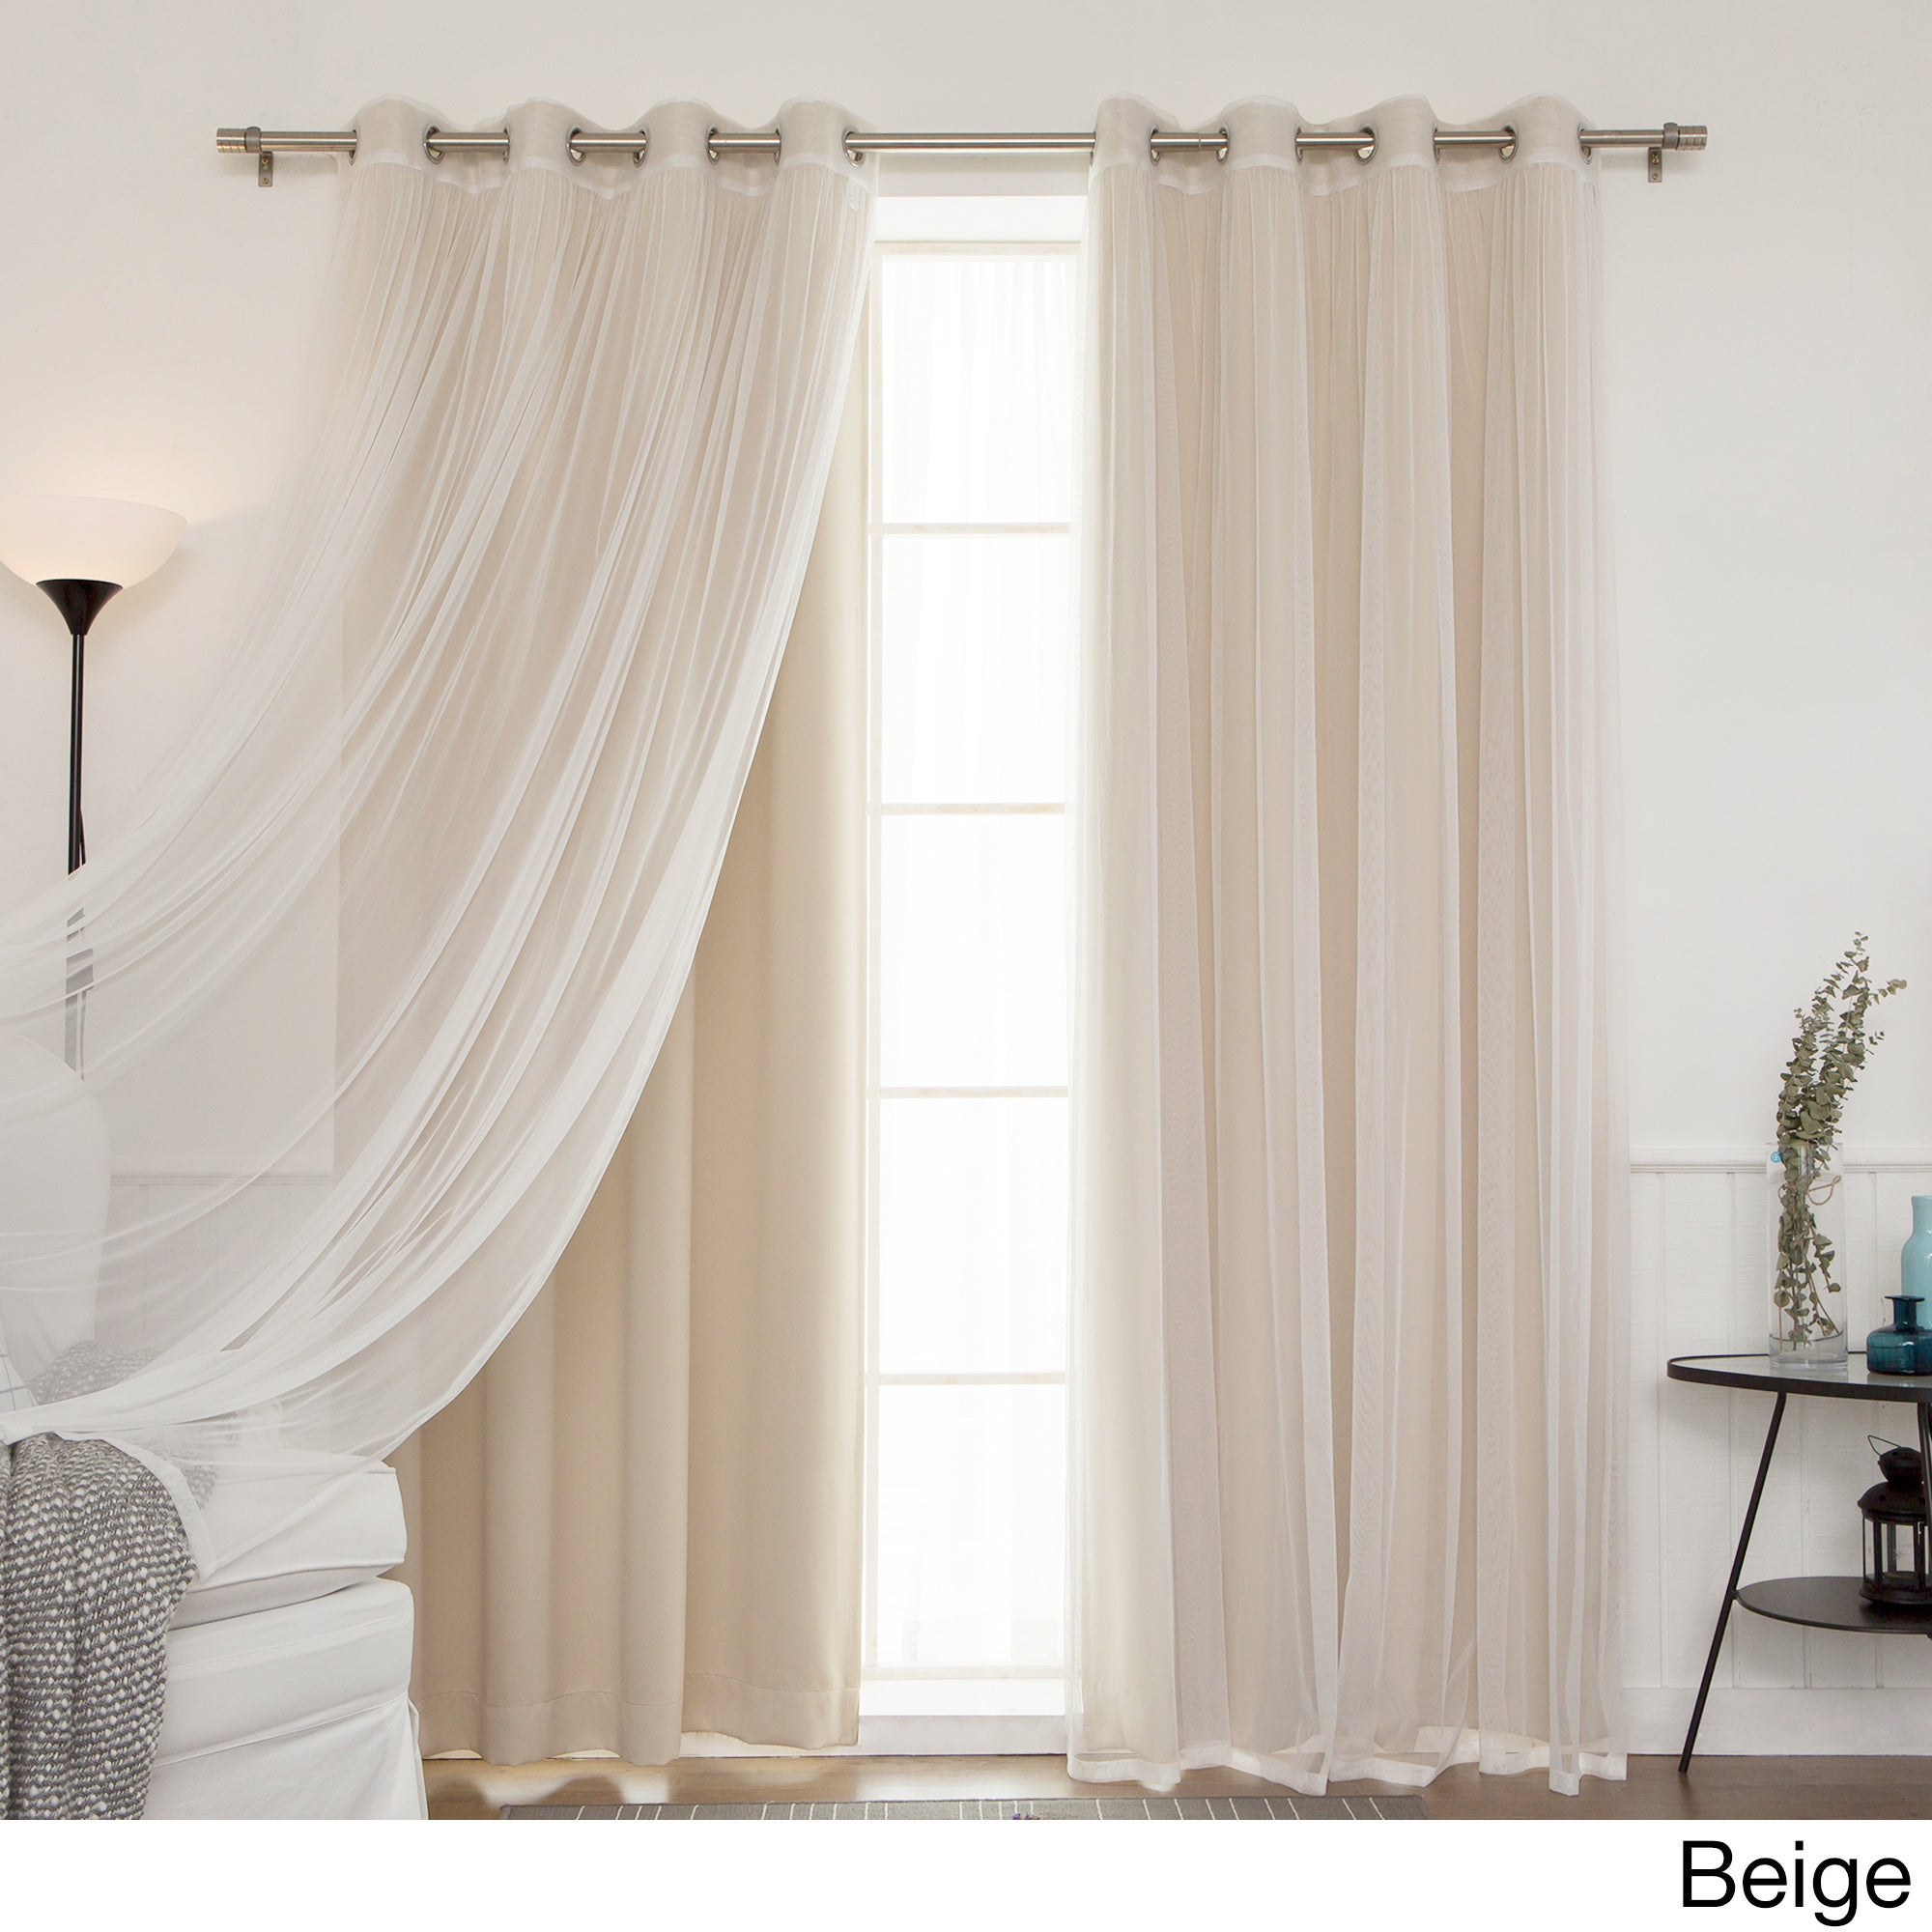 Aurora Home Mix And Match Blackout Tulle Lace Sheer 4 Piece Curtain Panel Set Within Mix And Match Blackout Tulle Lace Sheer Curtain Panel Sets (View 2 of 20)